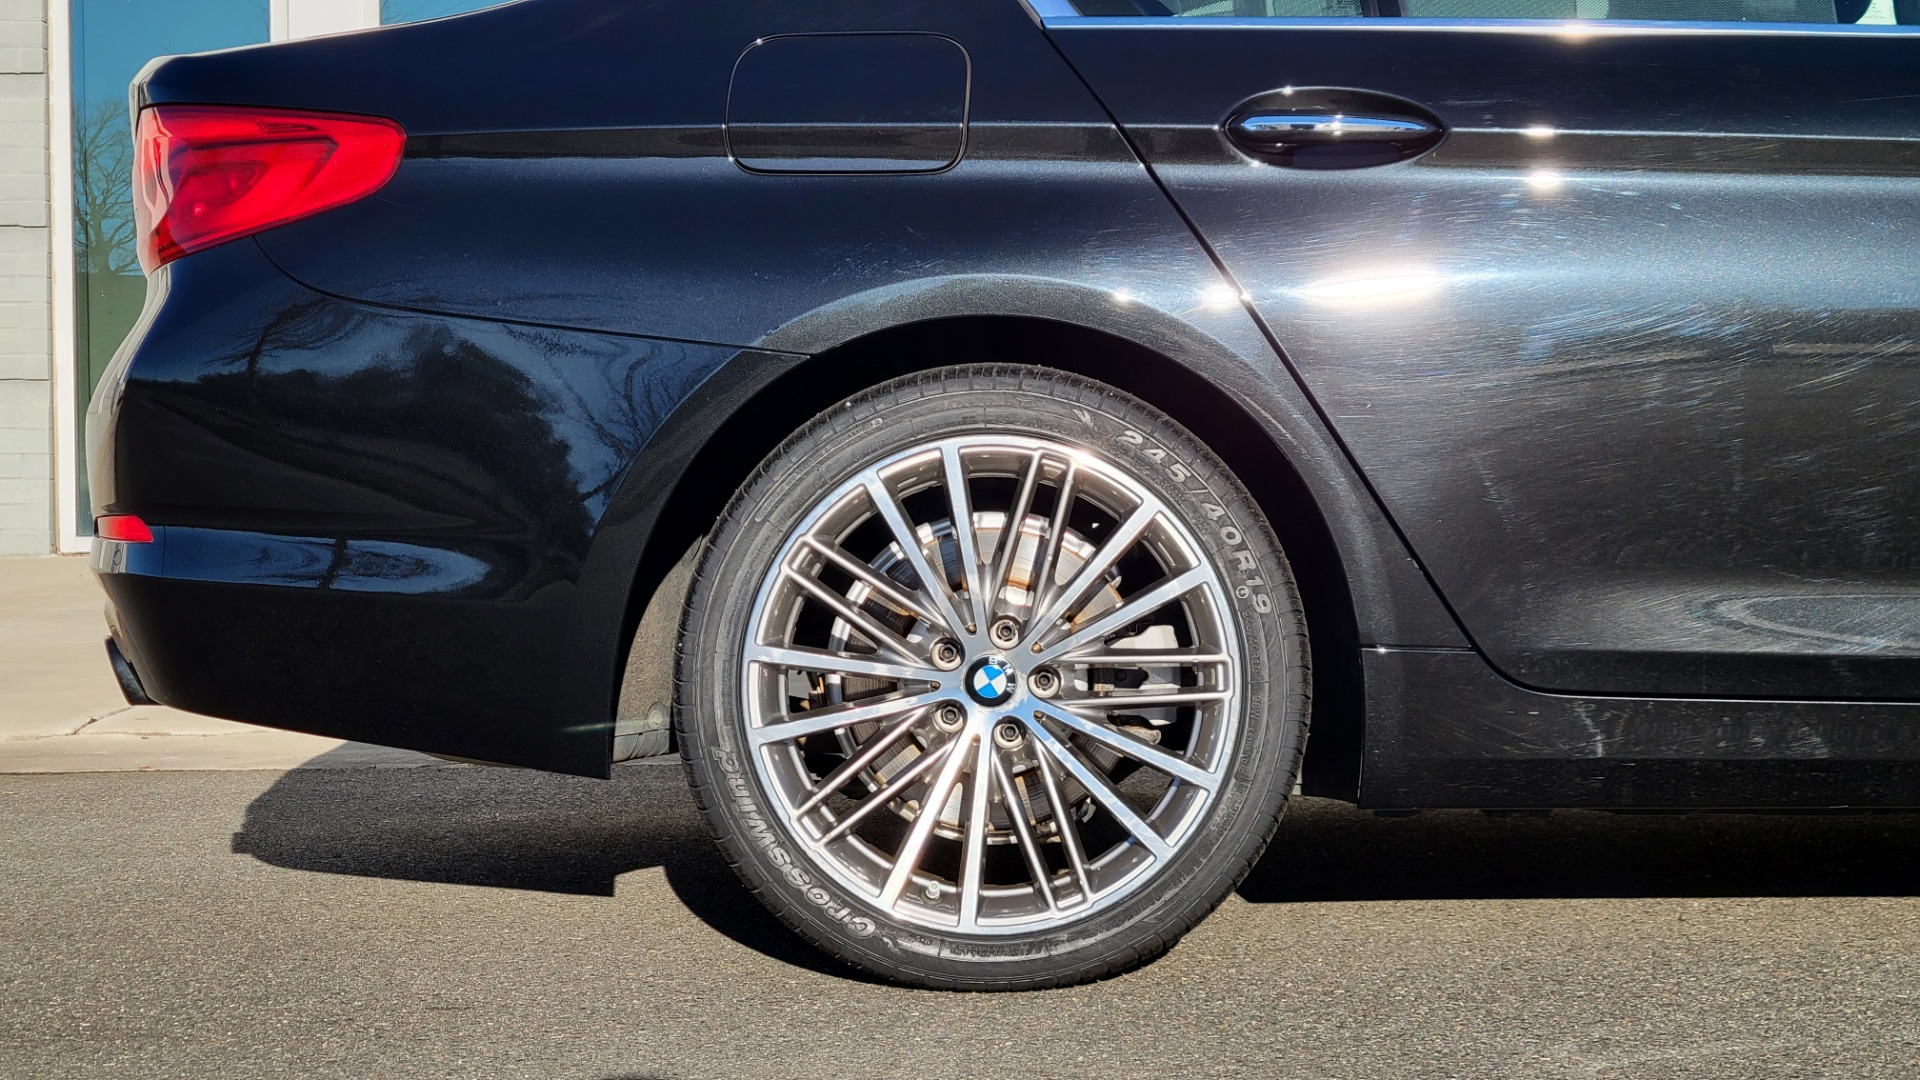 Used 2017 BMW 5 SERIES 530I XDRIVE PREMIUM / NAV / SUNROOF / PARK ASST / CLOD WTHR / REARVIEW for sale Sold at Formula Imports in Charlotte NC 28227 31